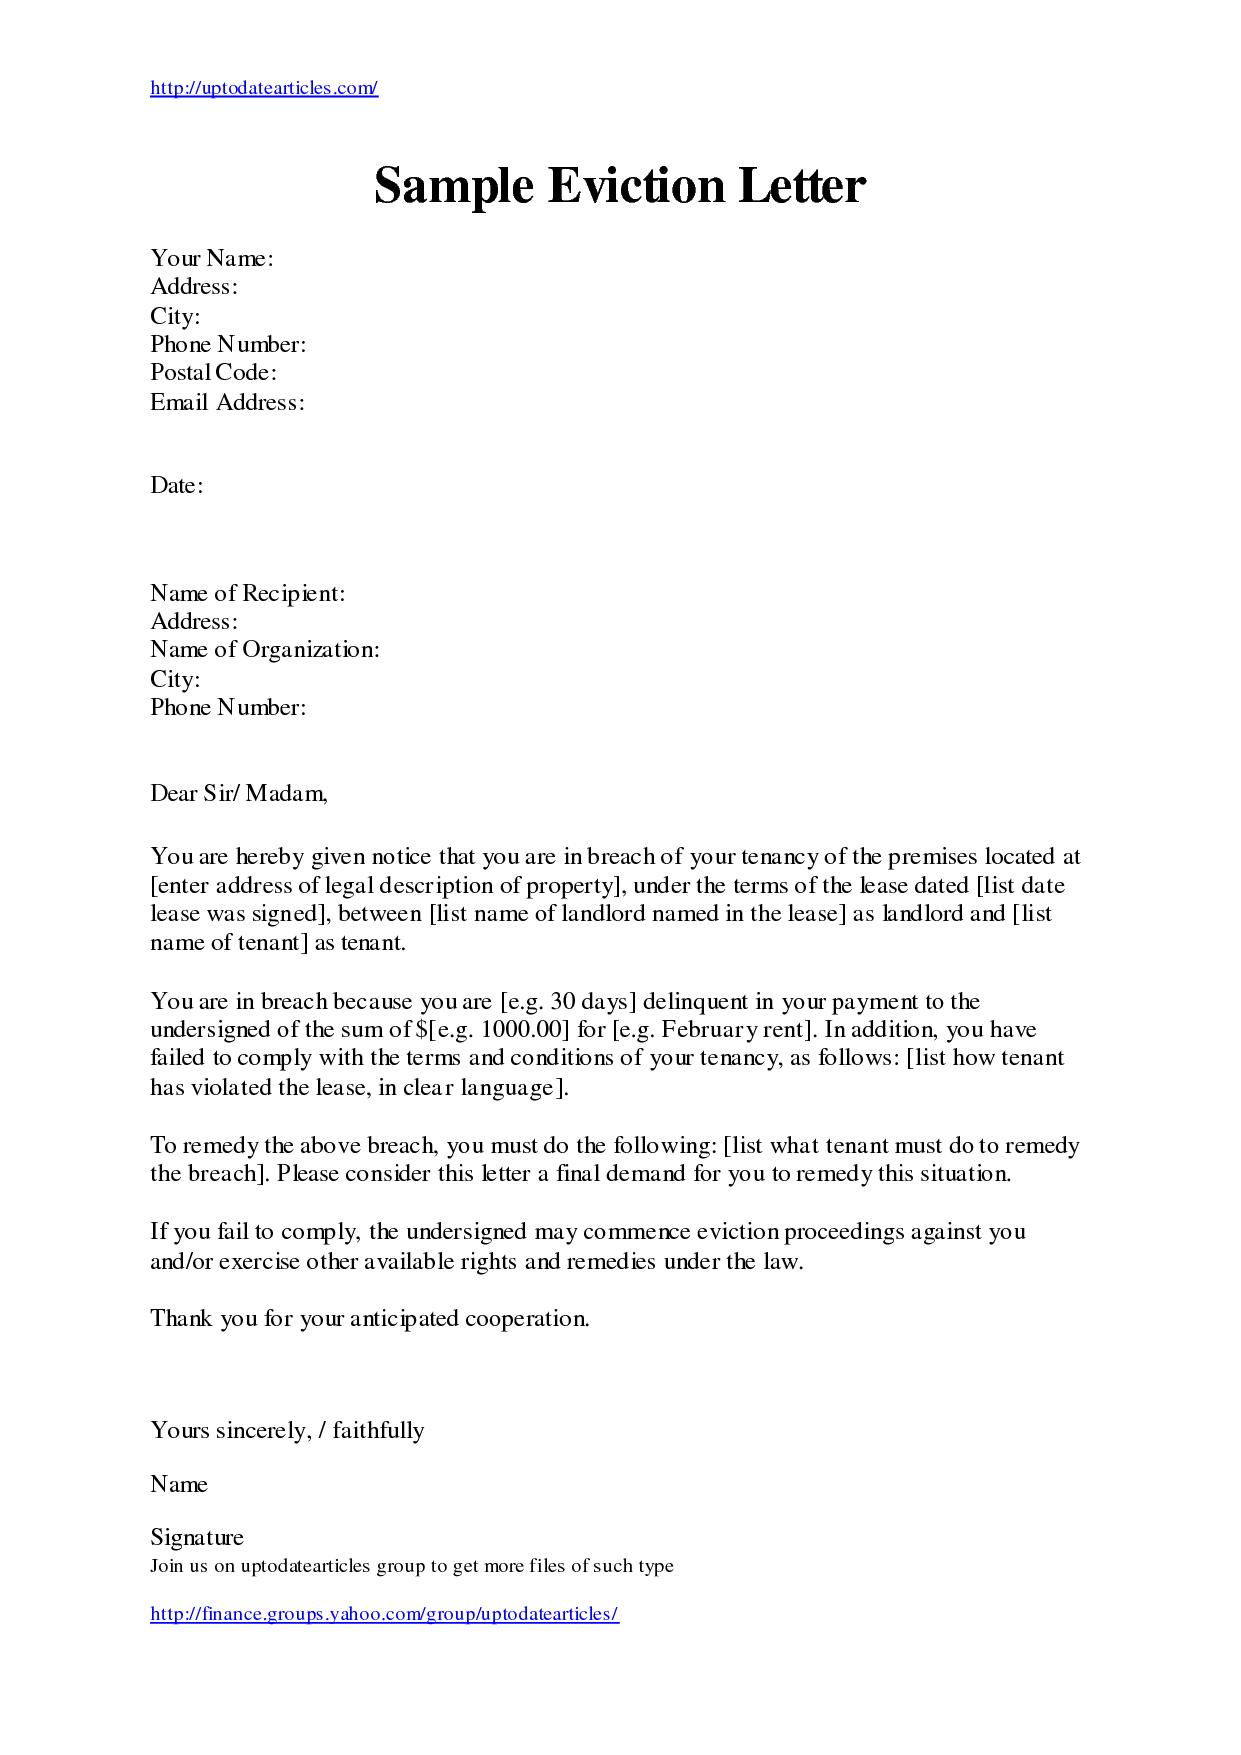 Example Eviction Letter